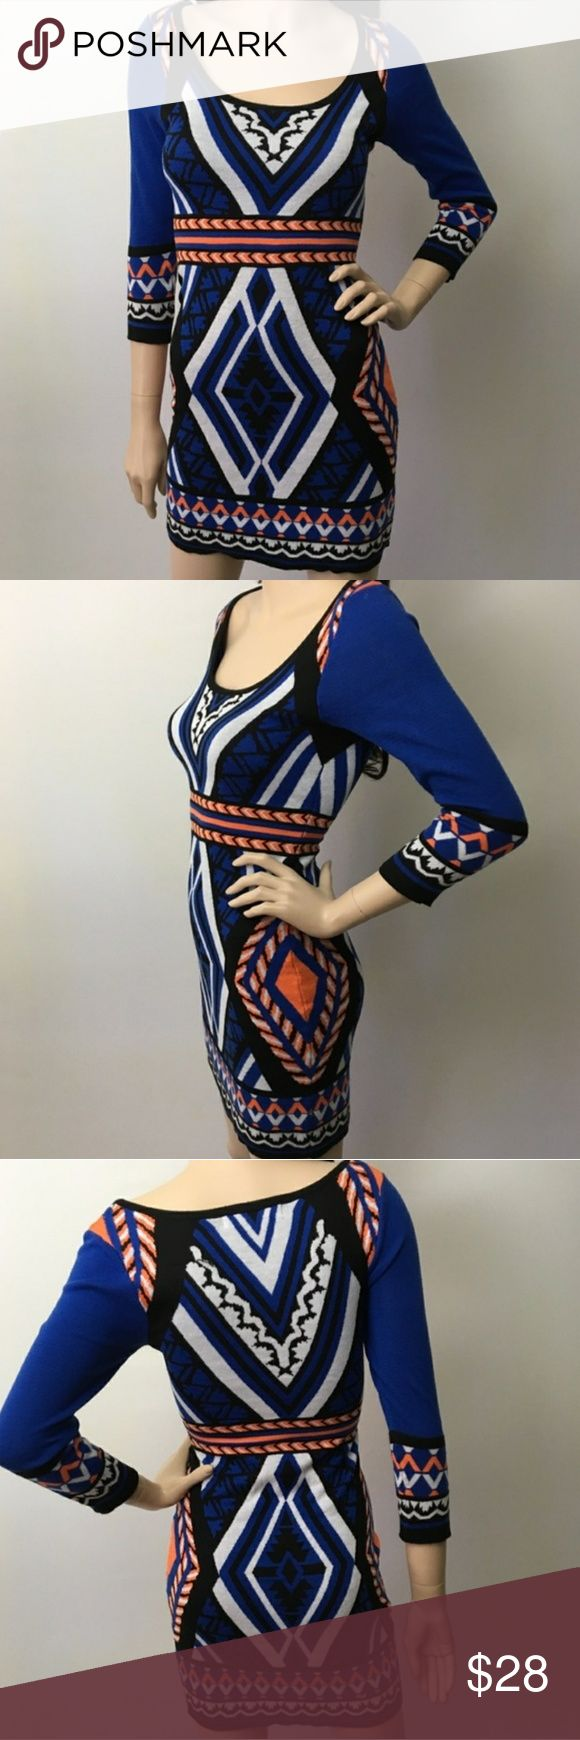 "Flying Tomato Aztec Bodycon Dress Flying Tomato Aztec Bodycon Dress   Extremely flattering form fitting dress. Lightly worn. Bodycon style with multicolored Aztec print. No flaws. 33"" length. Flying Tomato Dresses Long Sleeve"